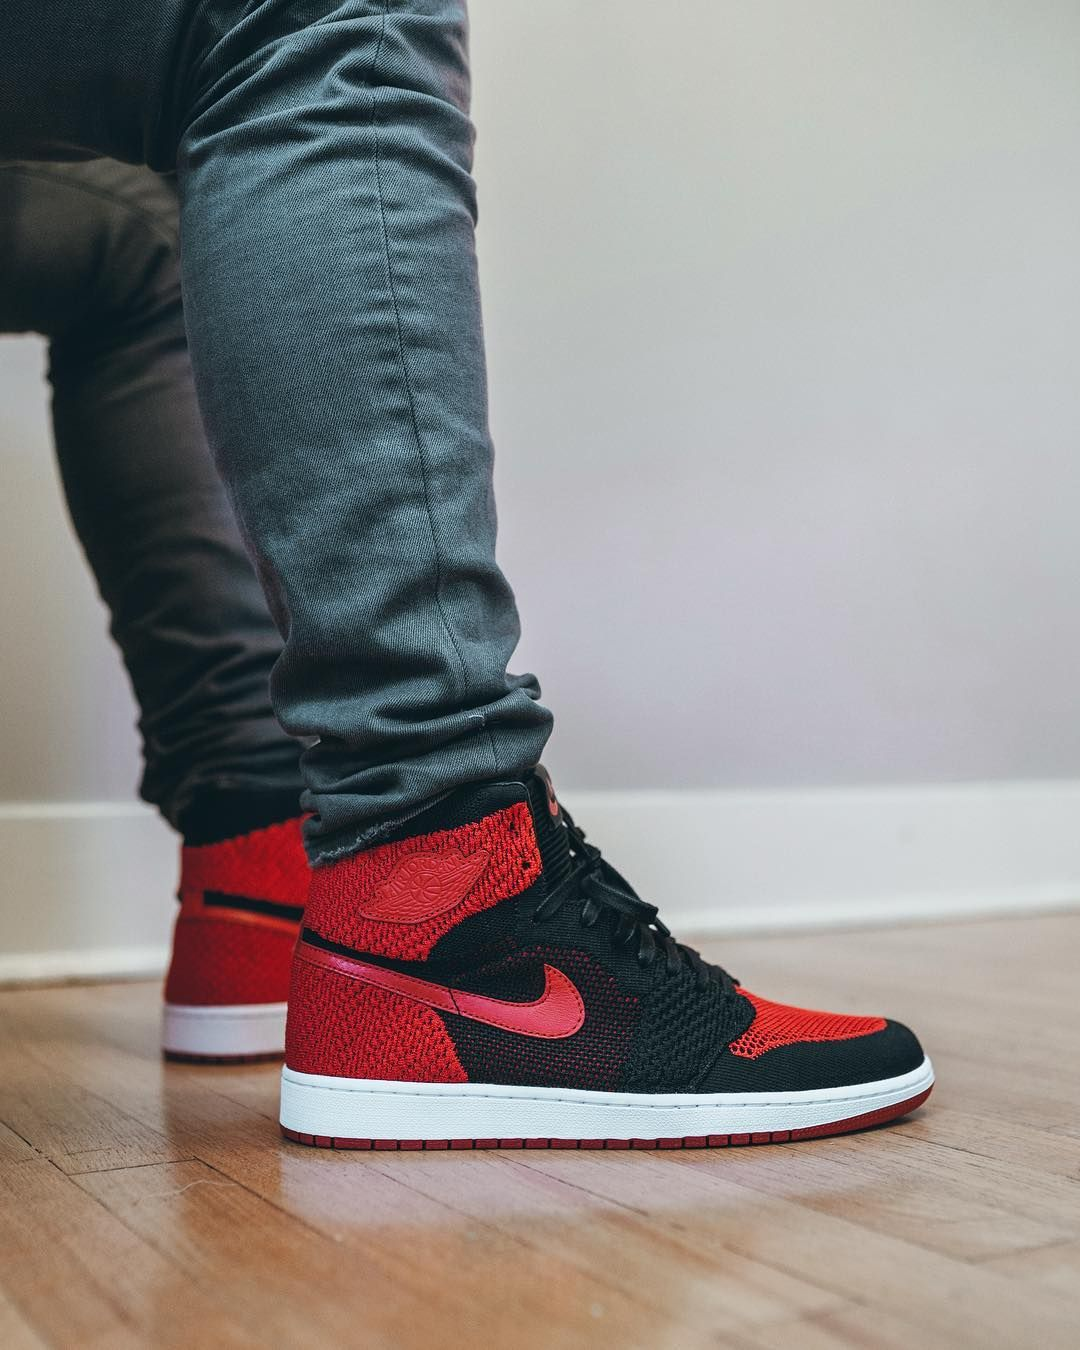 nike air jordan 1 retro high flyknit